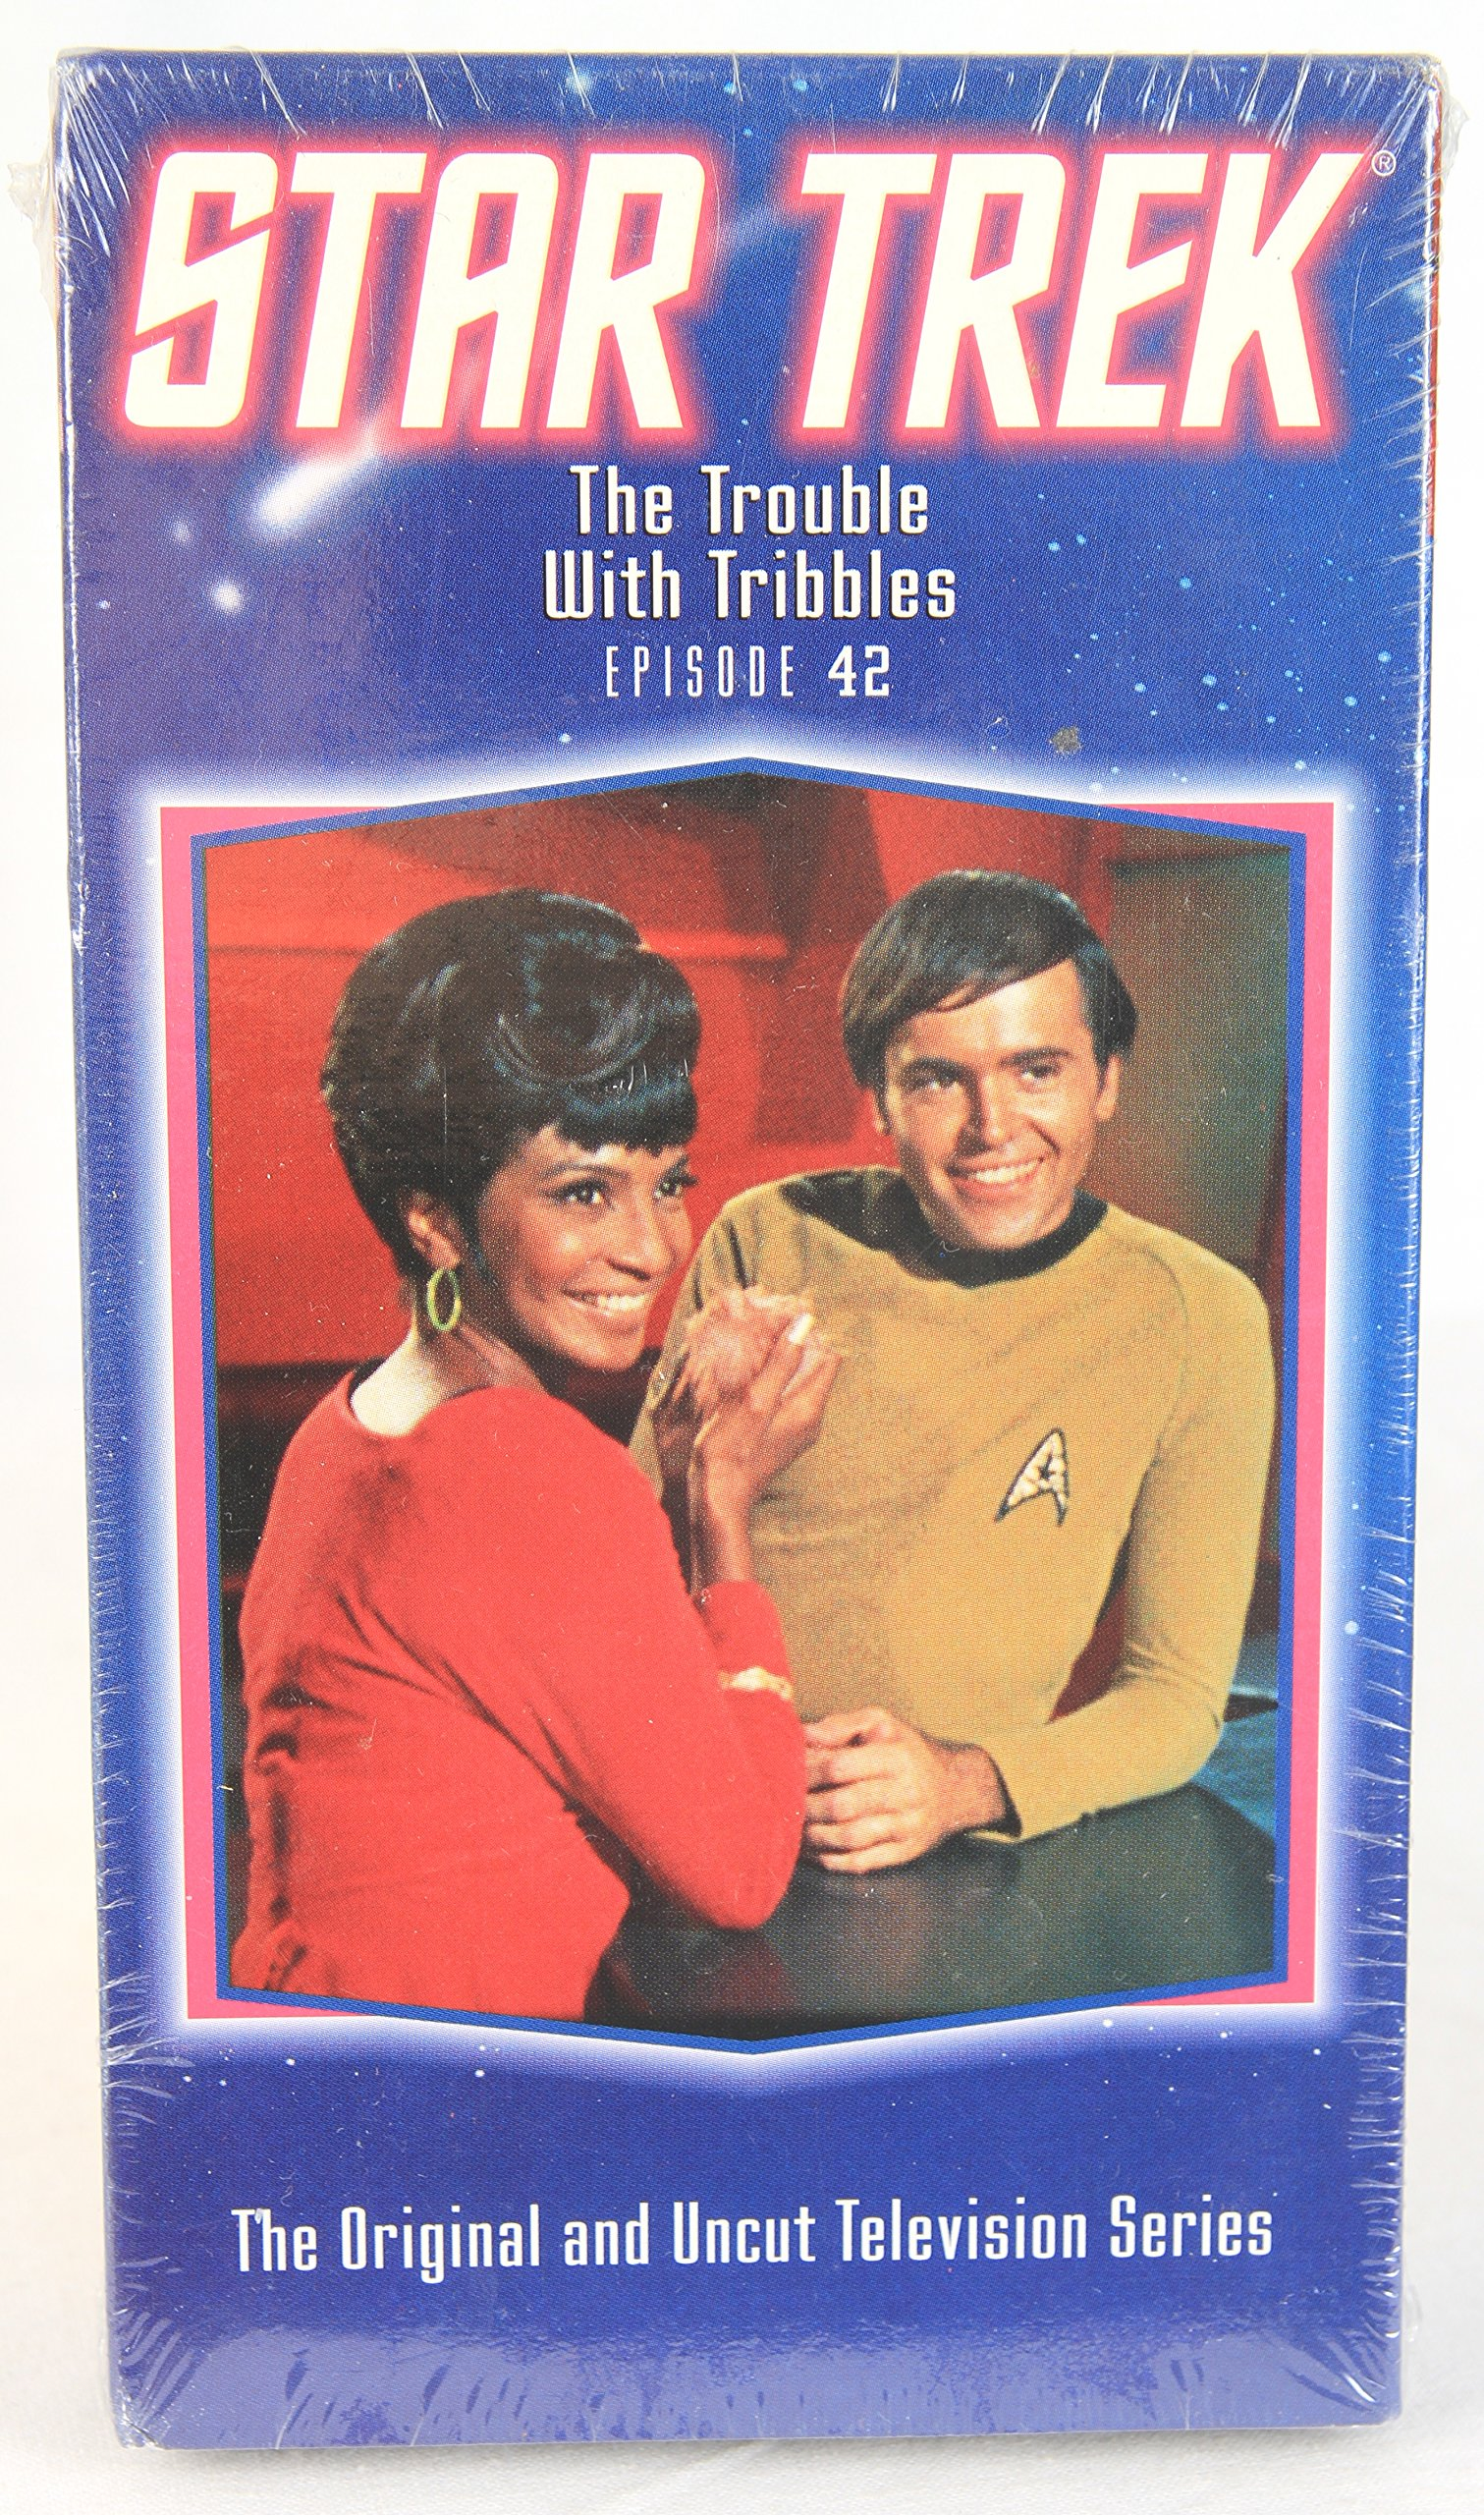 Star Trek, The Original and Uncut Television Series - Episode 42: The Trouble With Tribbles (1993 VHS)